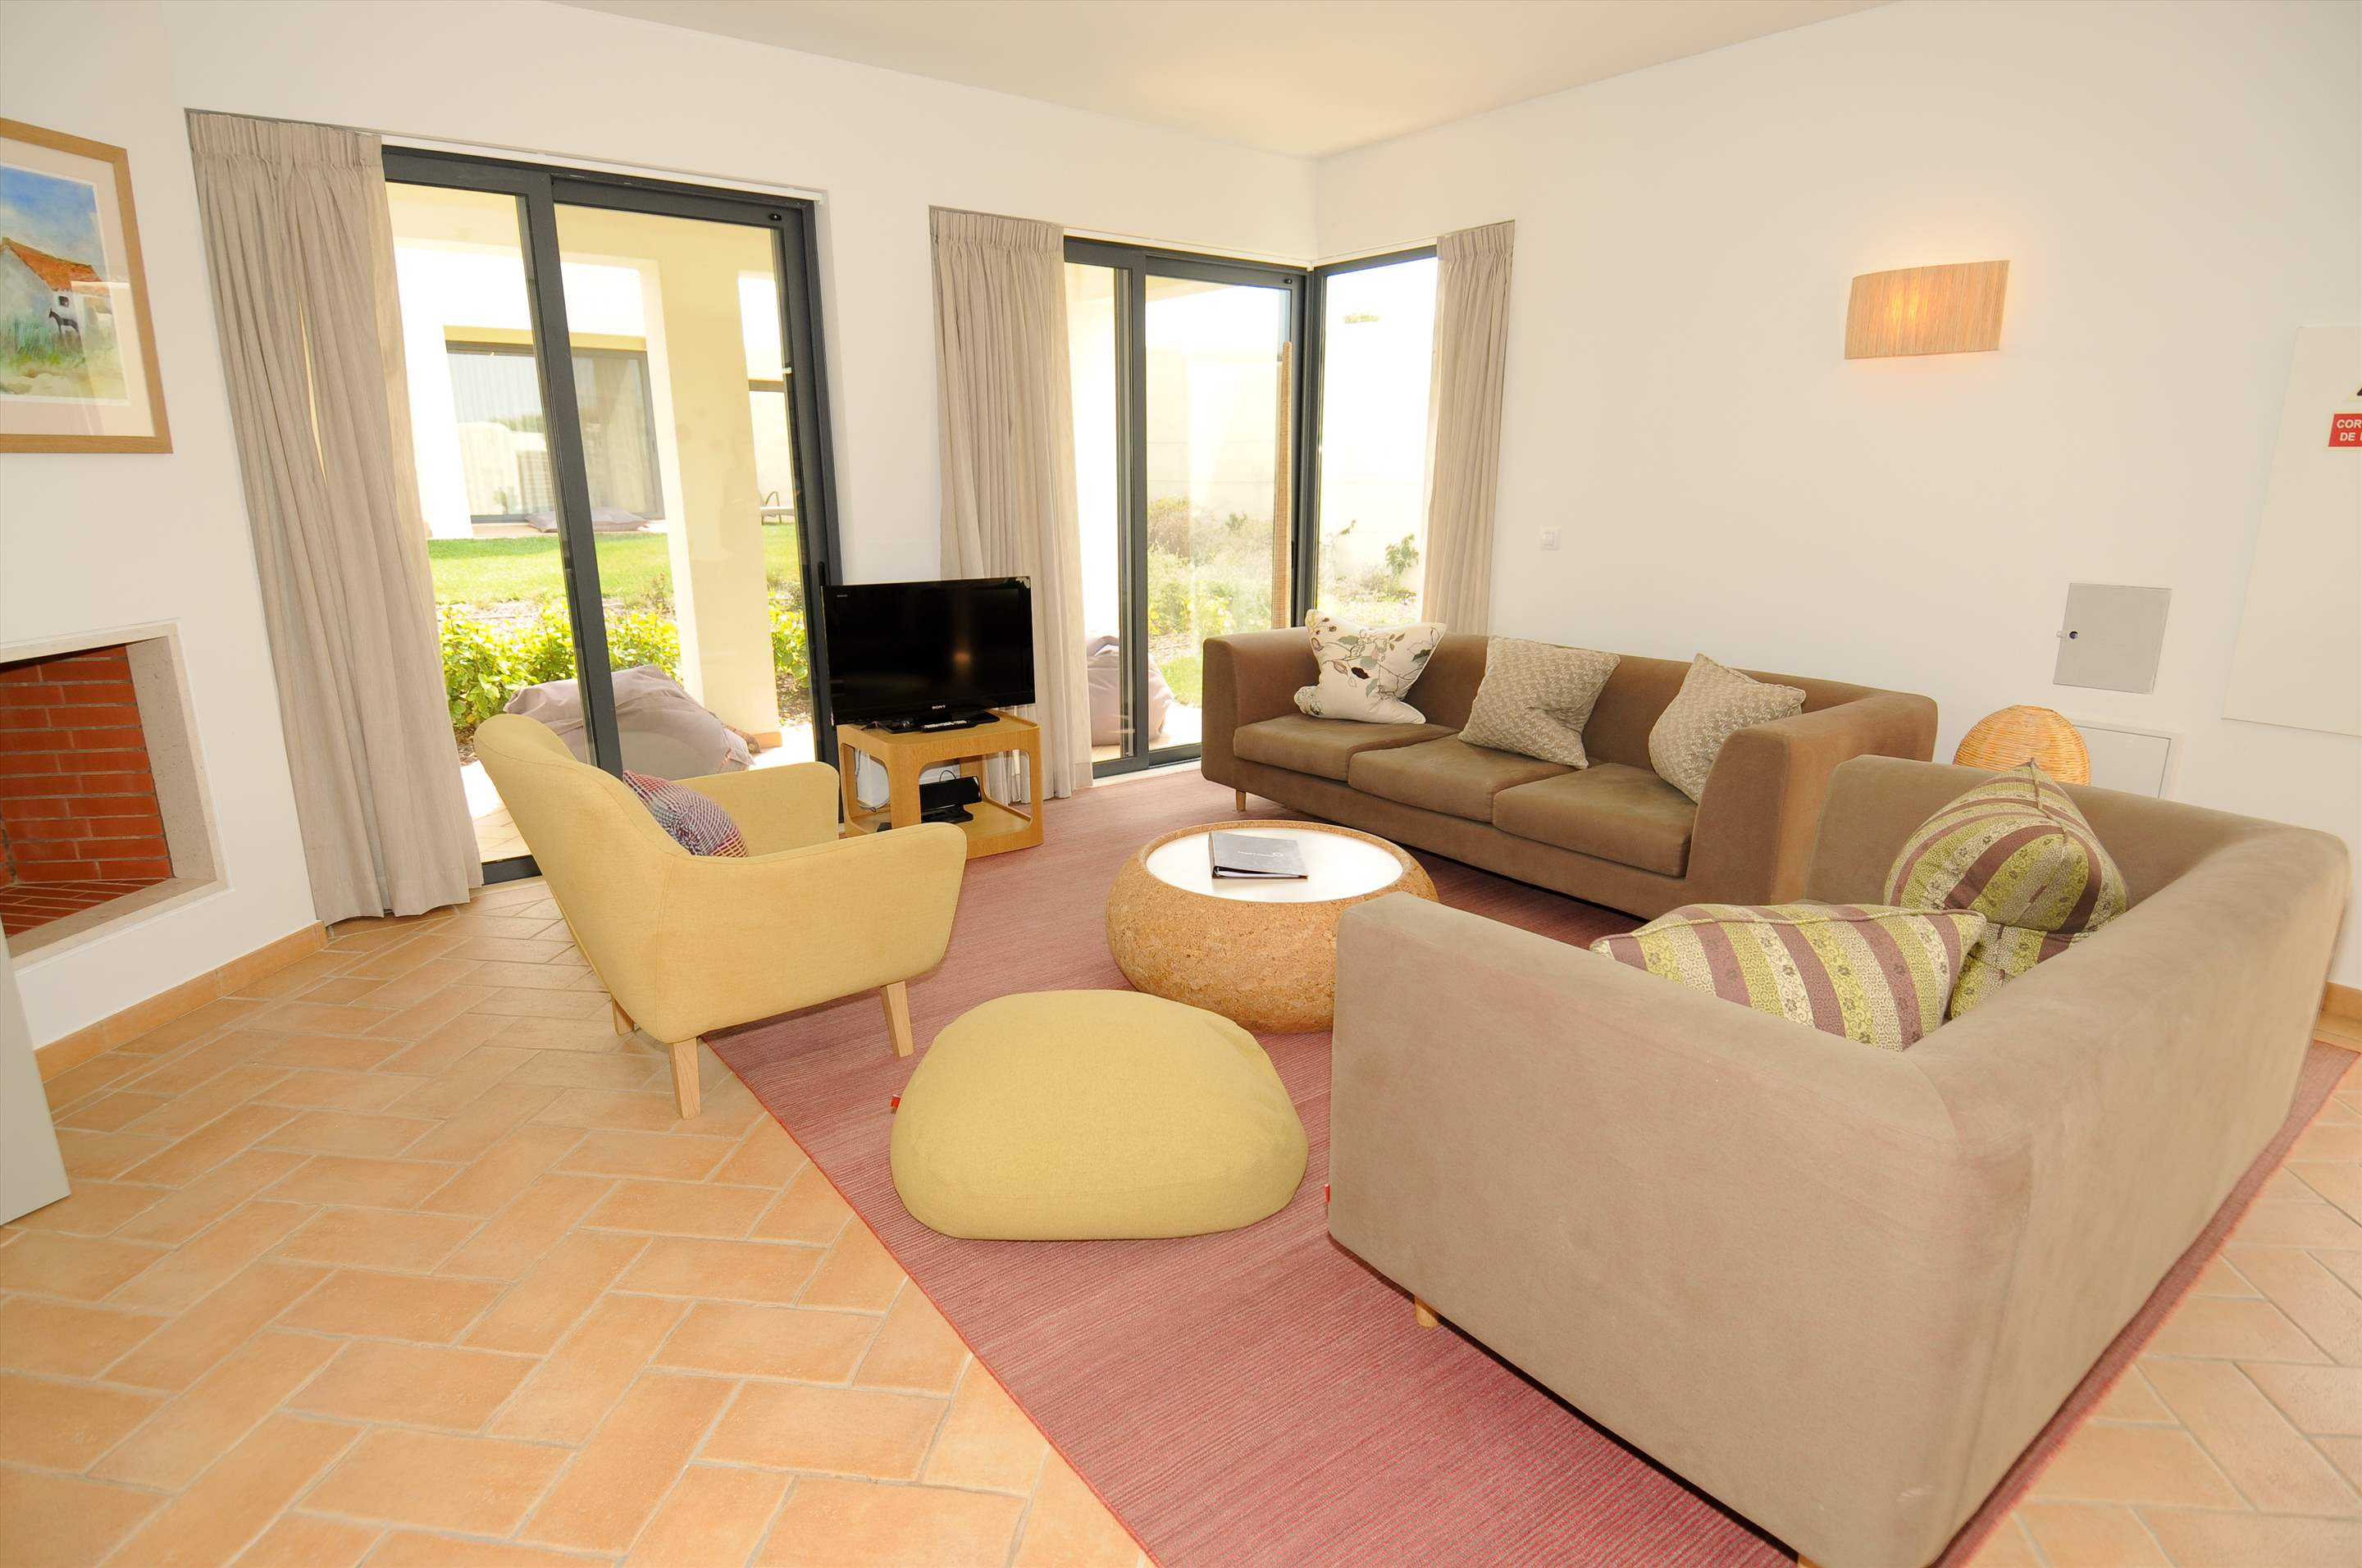 Martinhal Village Garden House, Master Deluxe Three Bedroom, 3 bedroom villa in Martinhal Sagres, Algarve Photo #1